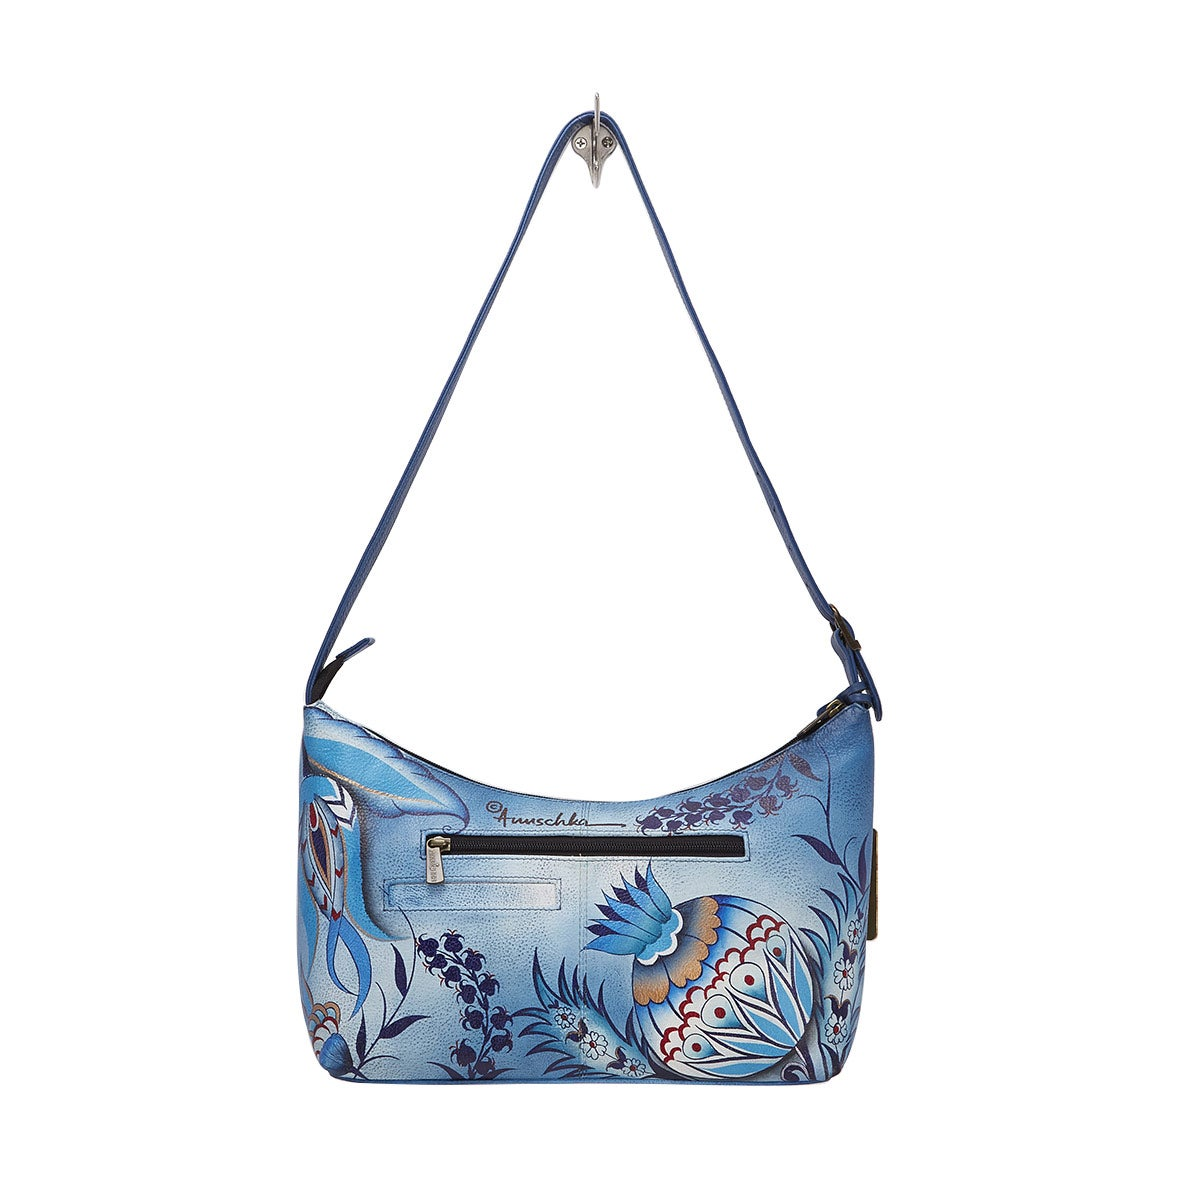 Printed lthr Bewitching Blues hobo bag